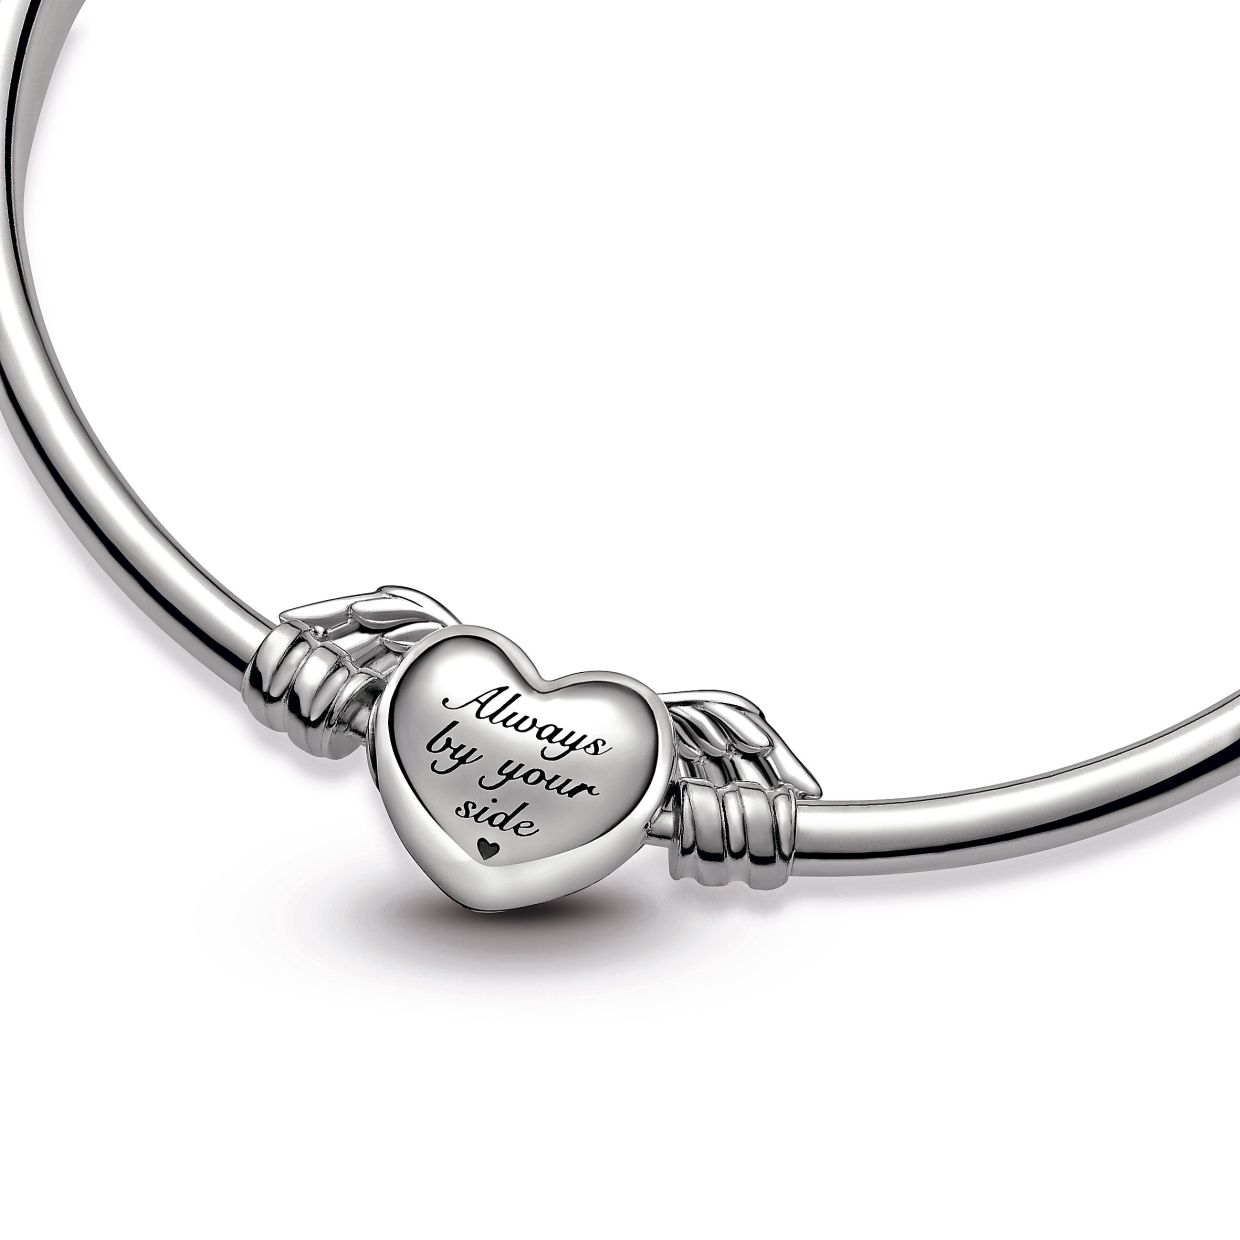 Mums with sleek, modern style will love the Pandora Moments Winged Heart Bangle.